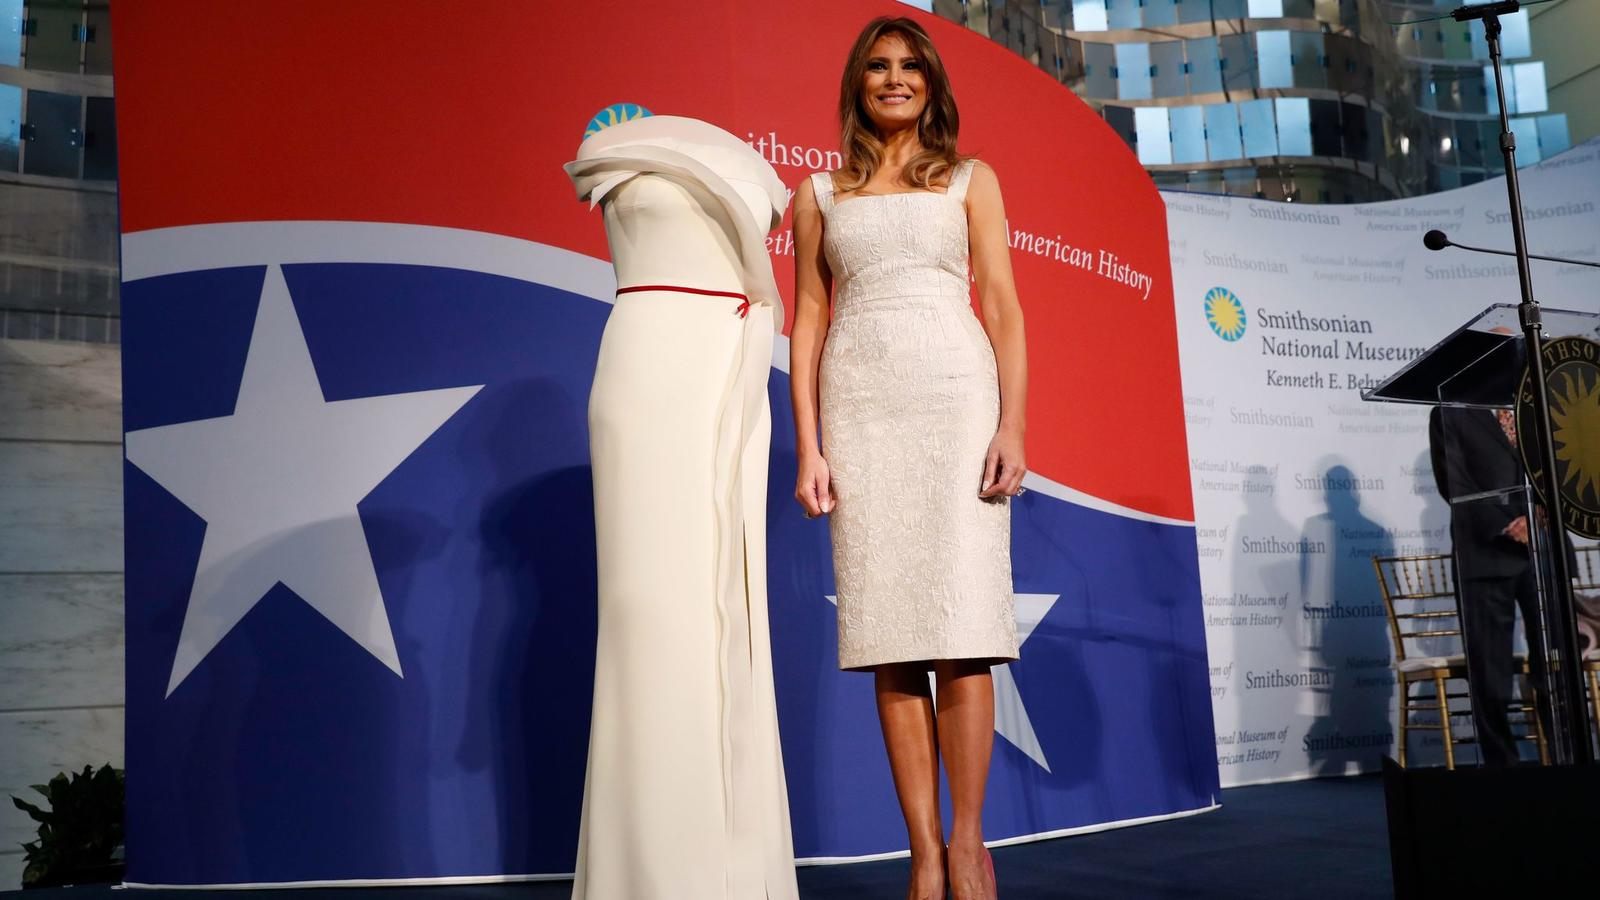 Melania Trump donated her inauguration ball dress by Hervé Pierre to the Smithsonian museum.